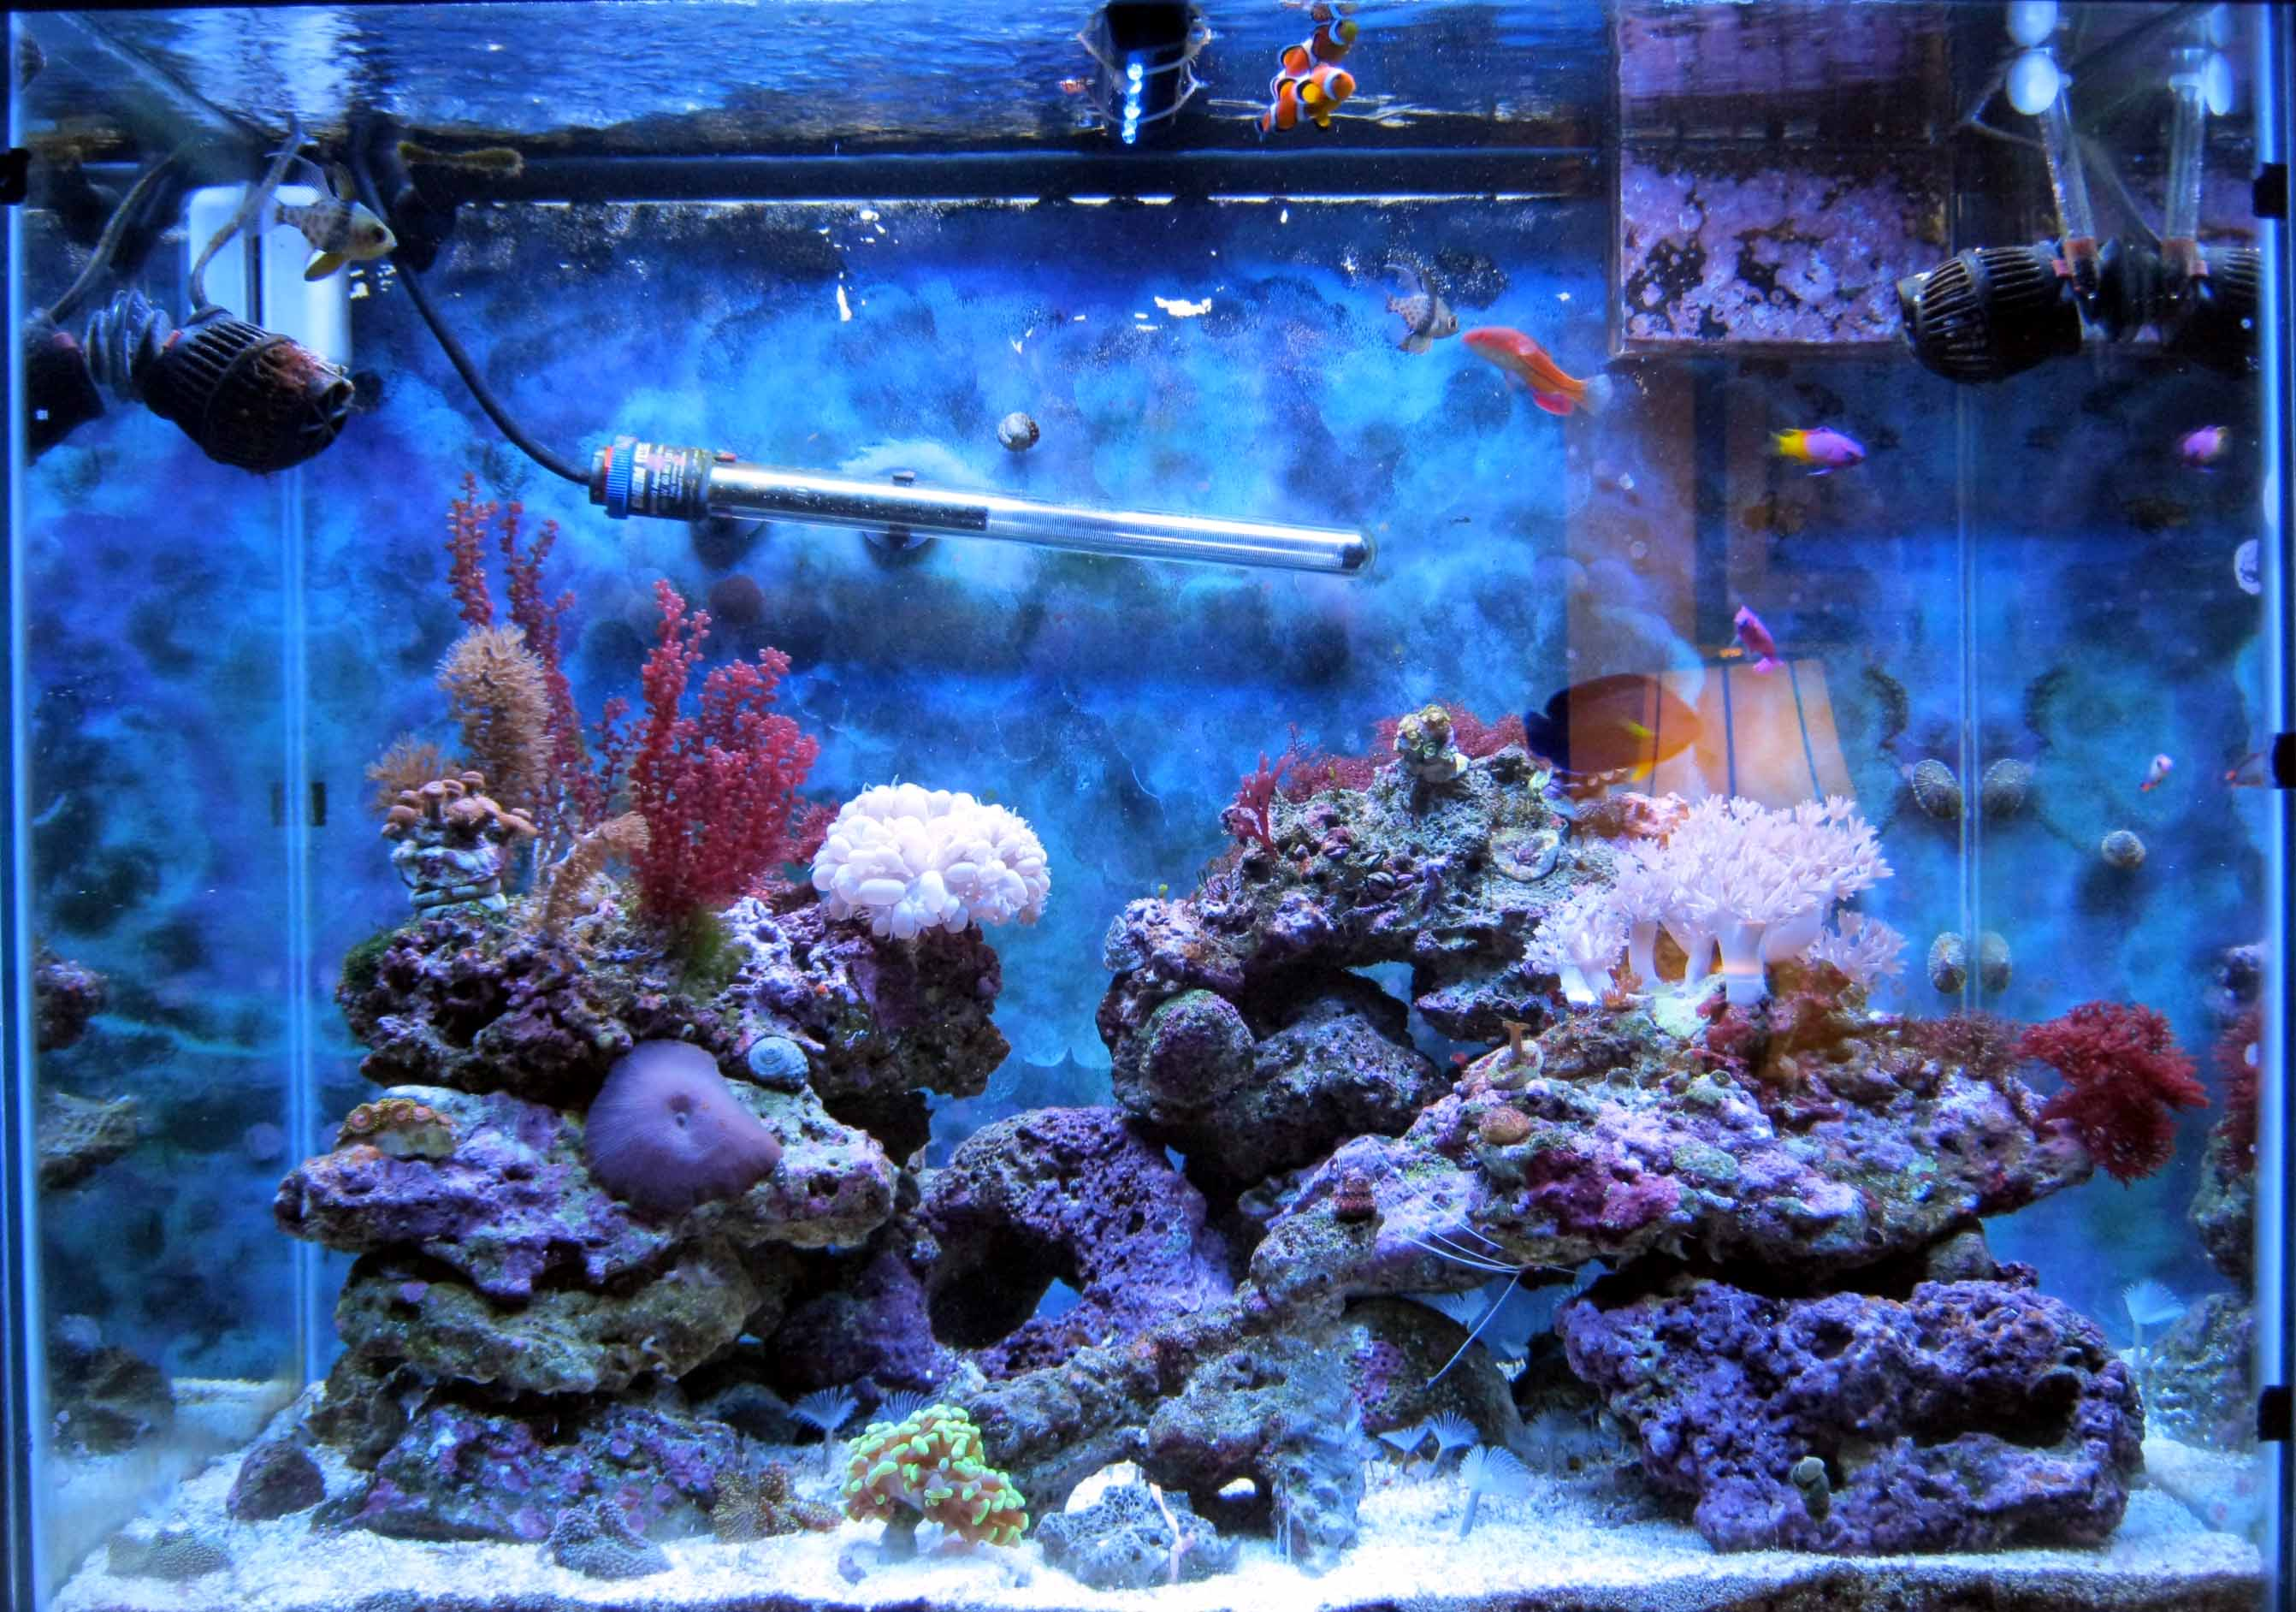 How much live rock would you re mend for my 55 gallon tank